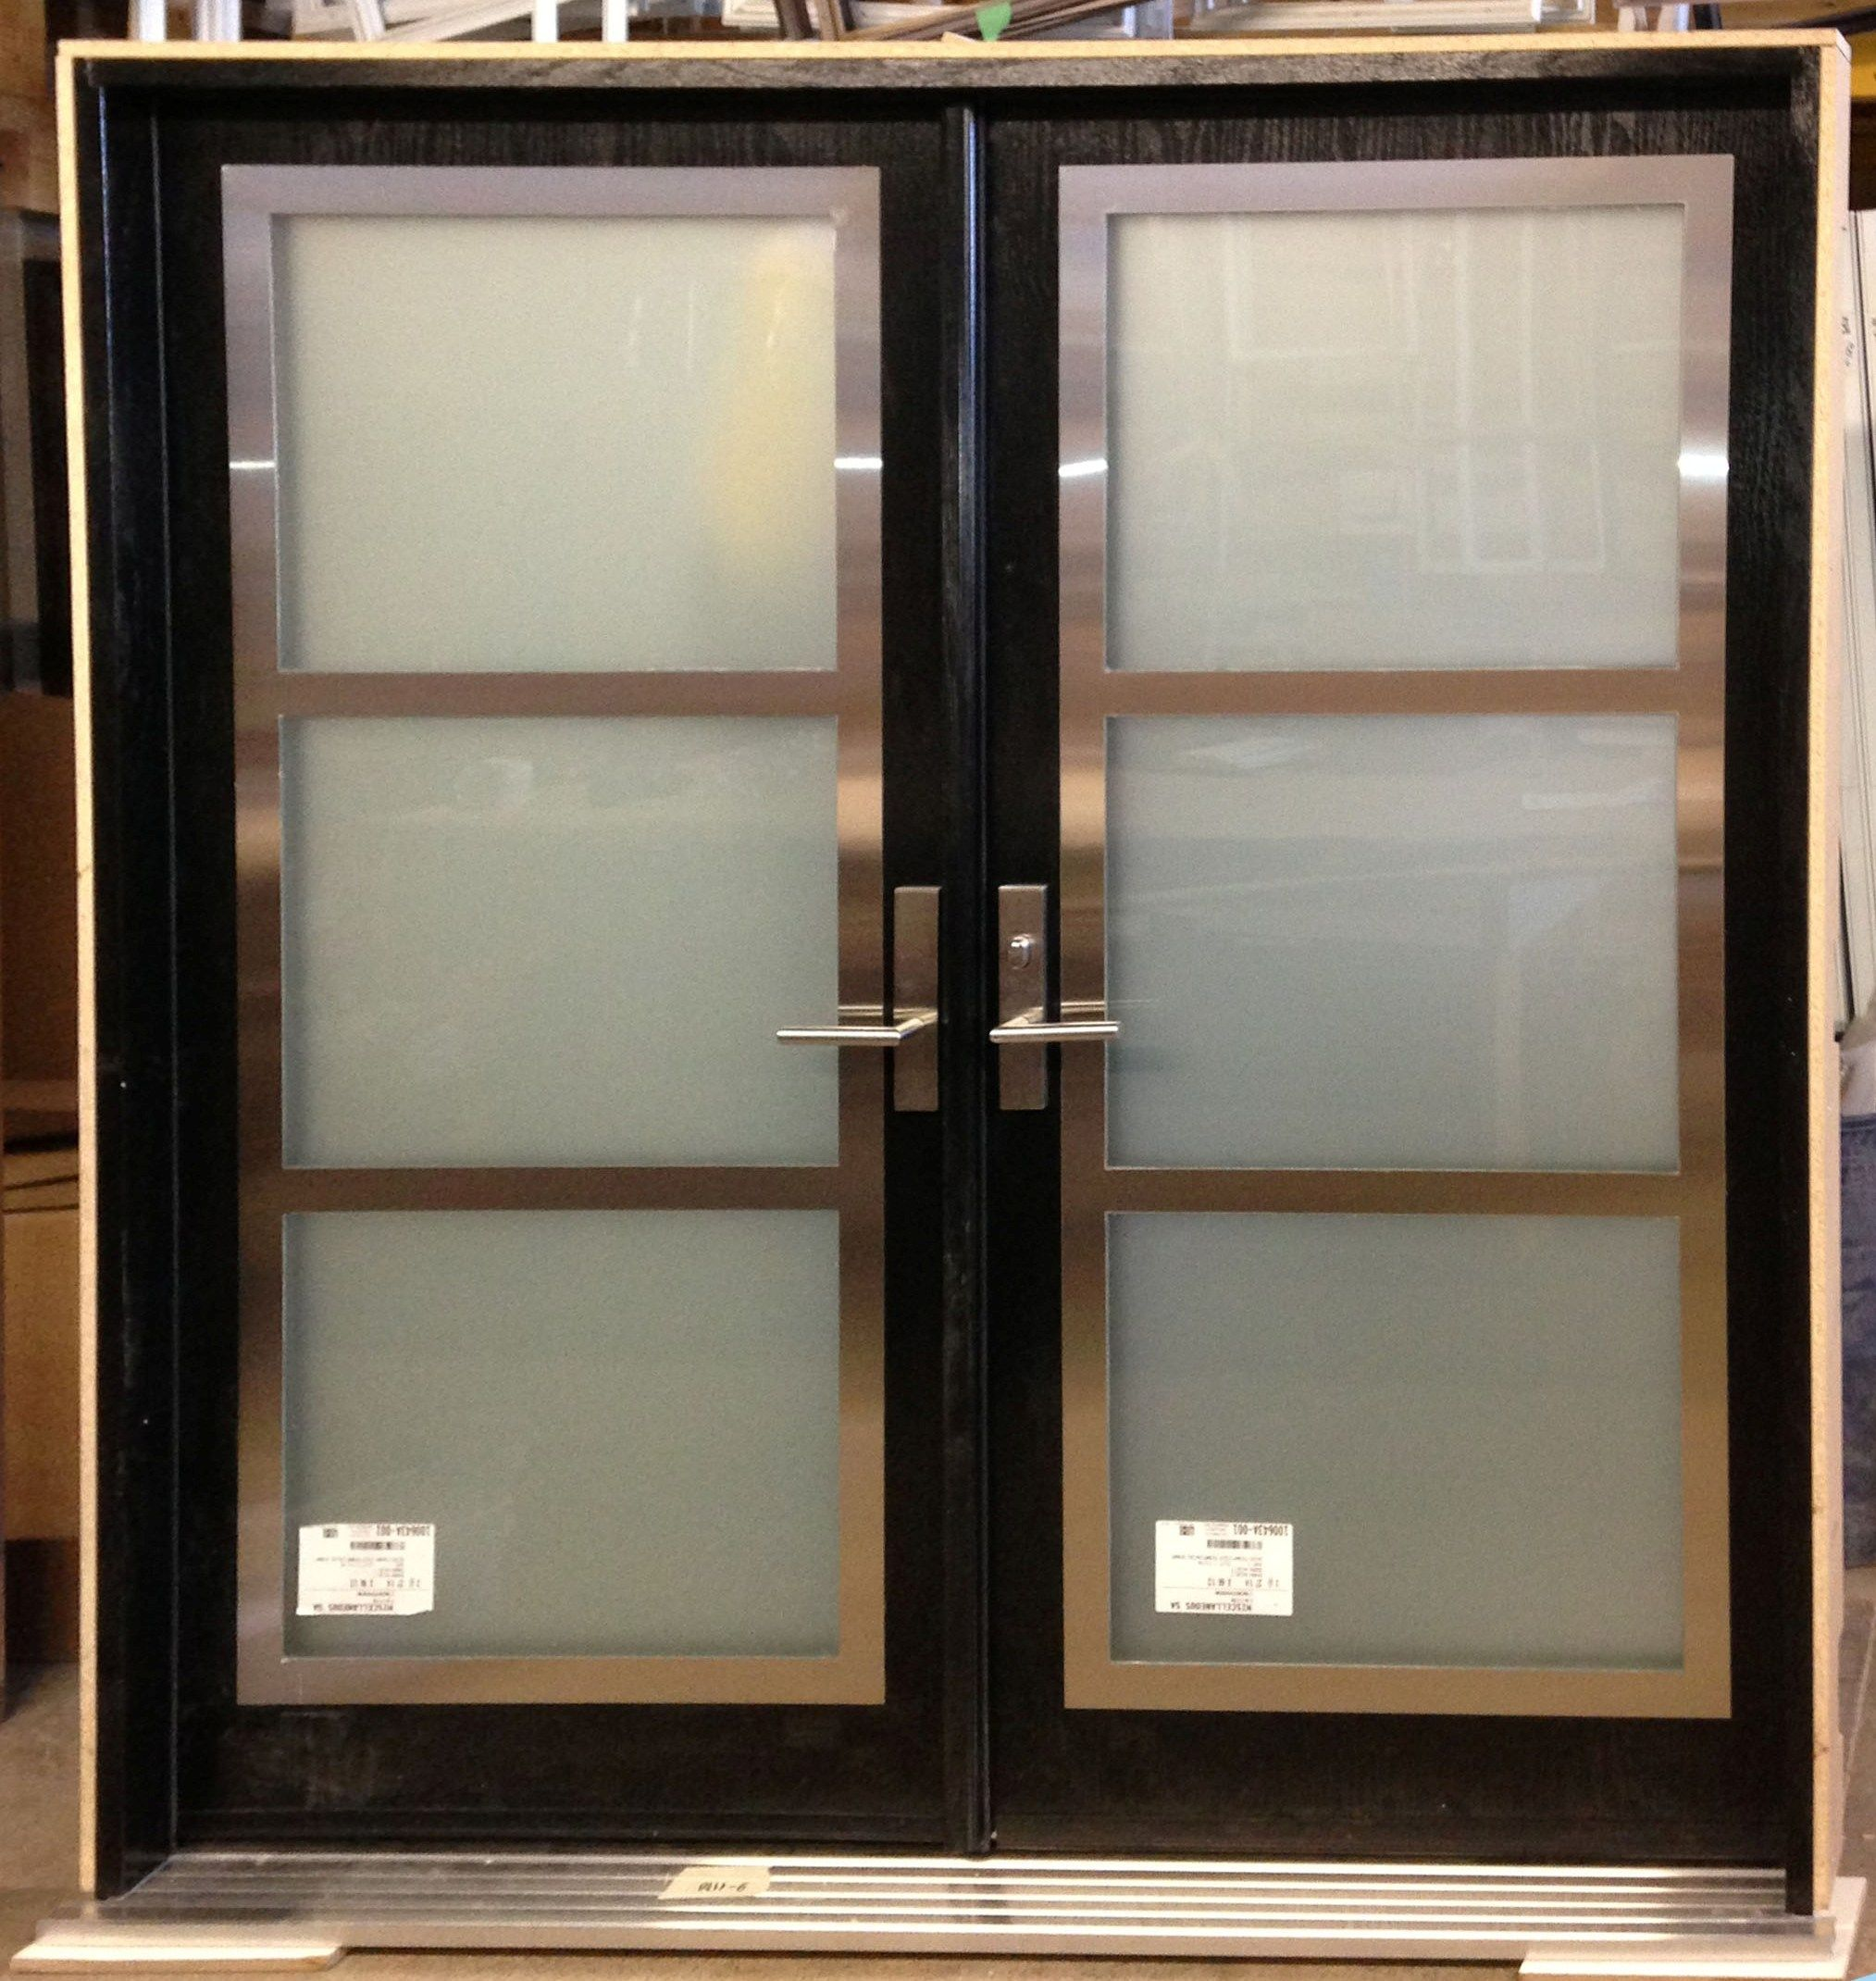 Double entry door with stainless steel frame on top of for Modern front double door designs